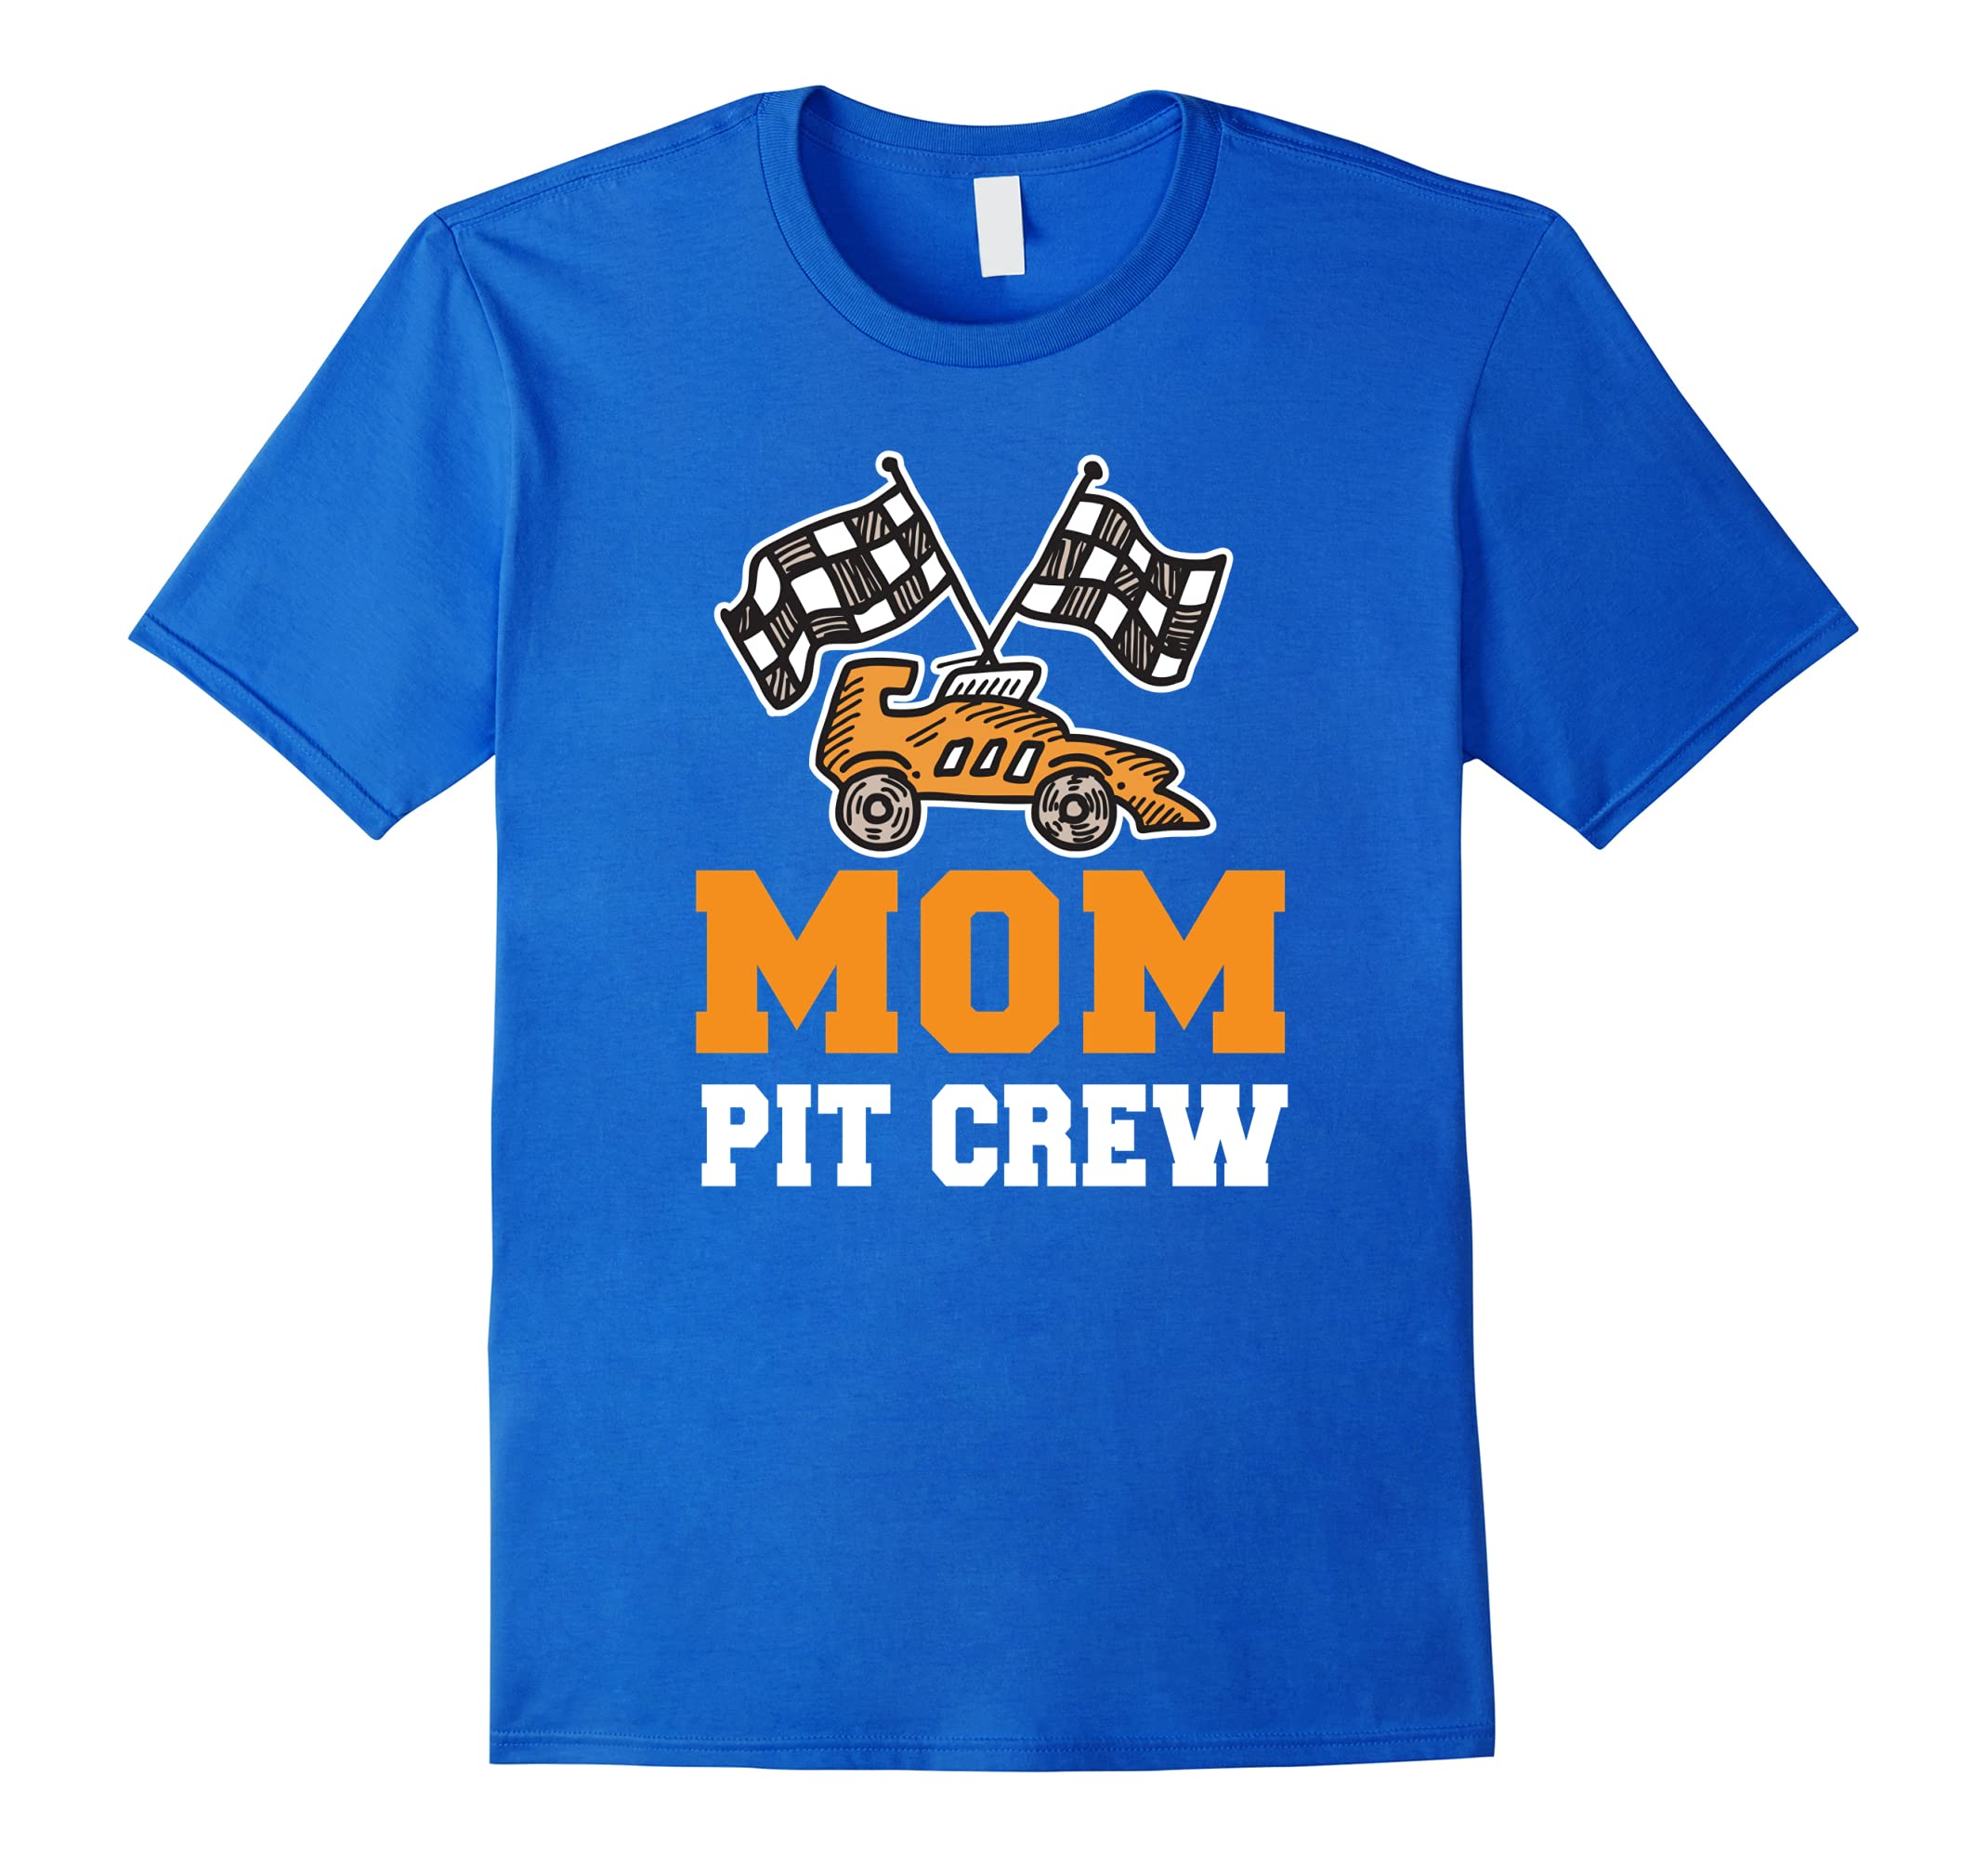 Mom Birthday Pit Crew T Shirt Car Race Theme Bday Party Ah My Shirt